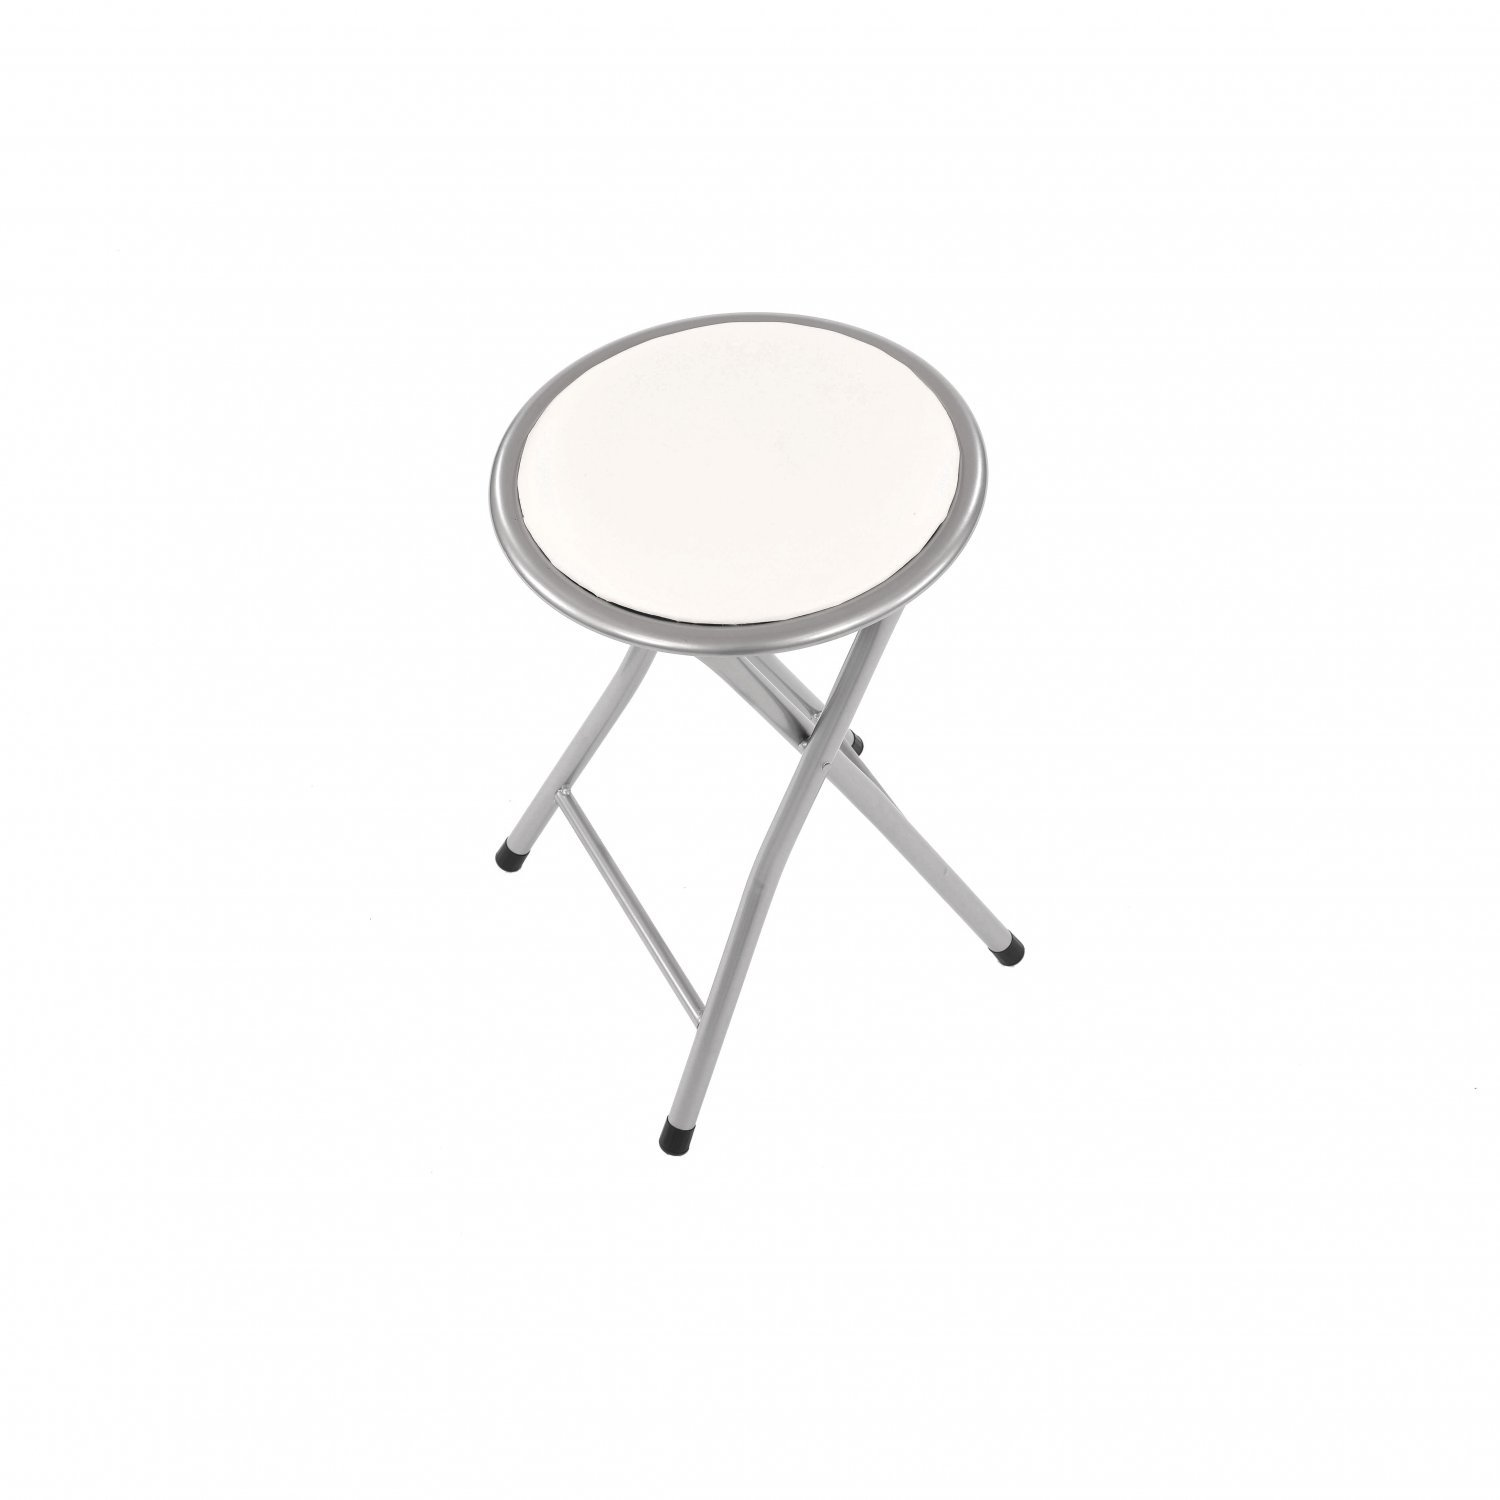 Swell White Padded Folding Breakfast Kitchen Bar Stool Seat Pabps2019 Chair Design Images Pabps2019Com